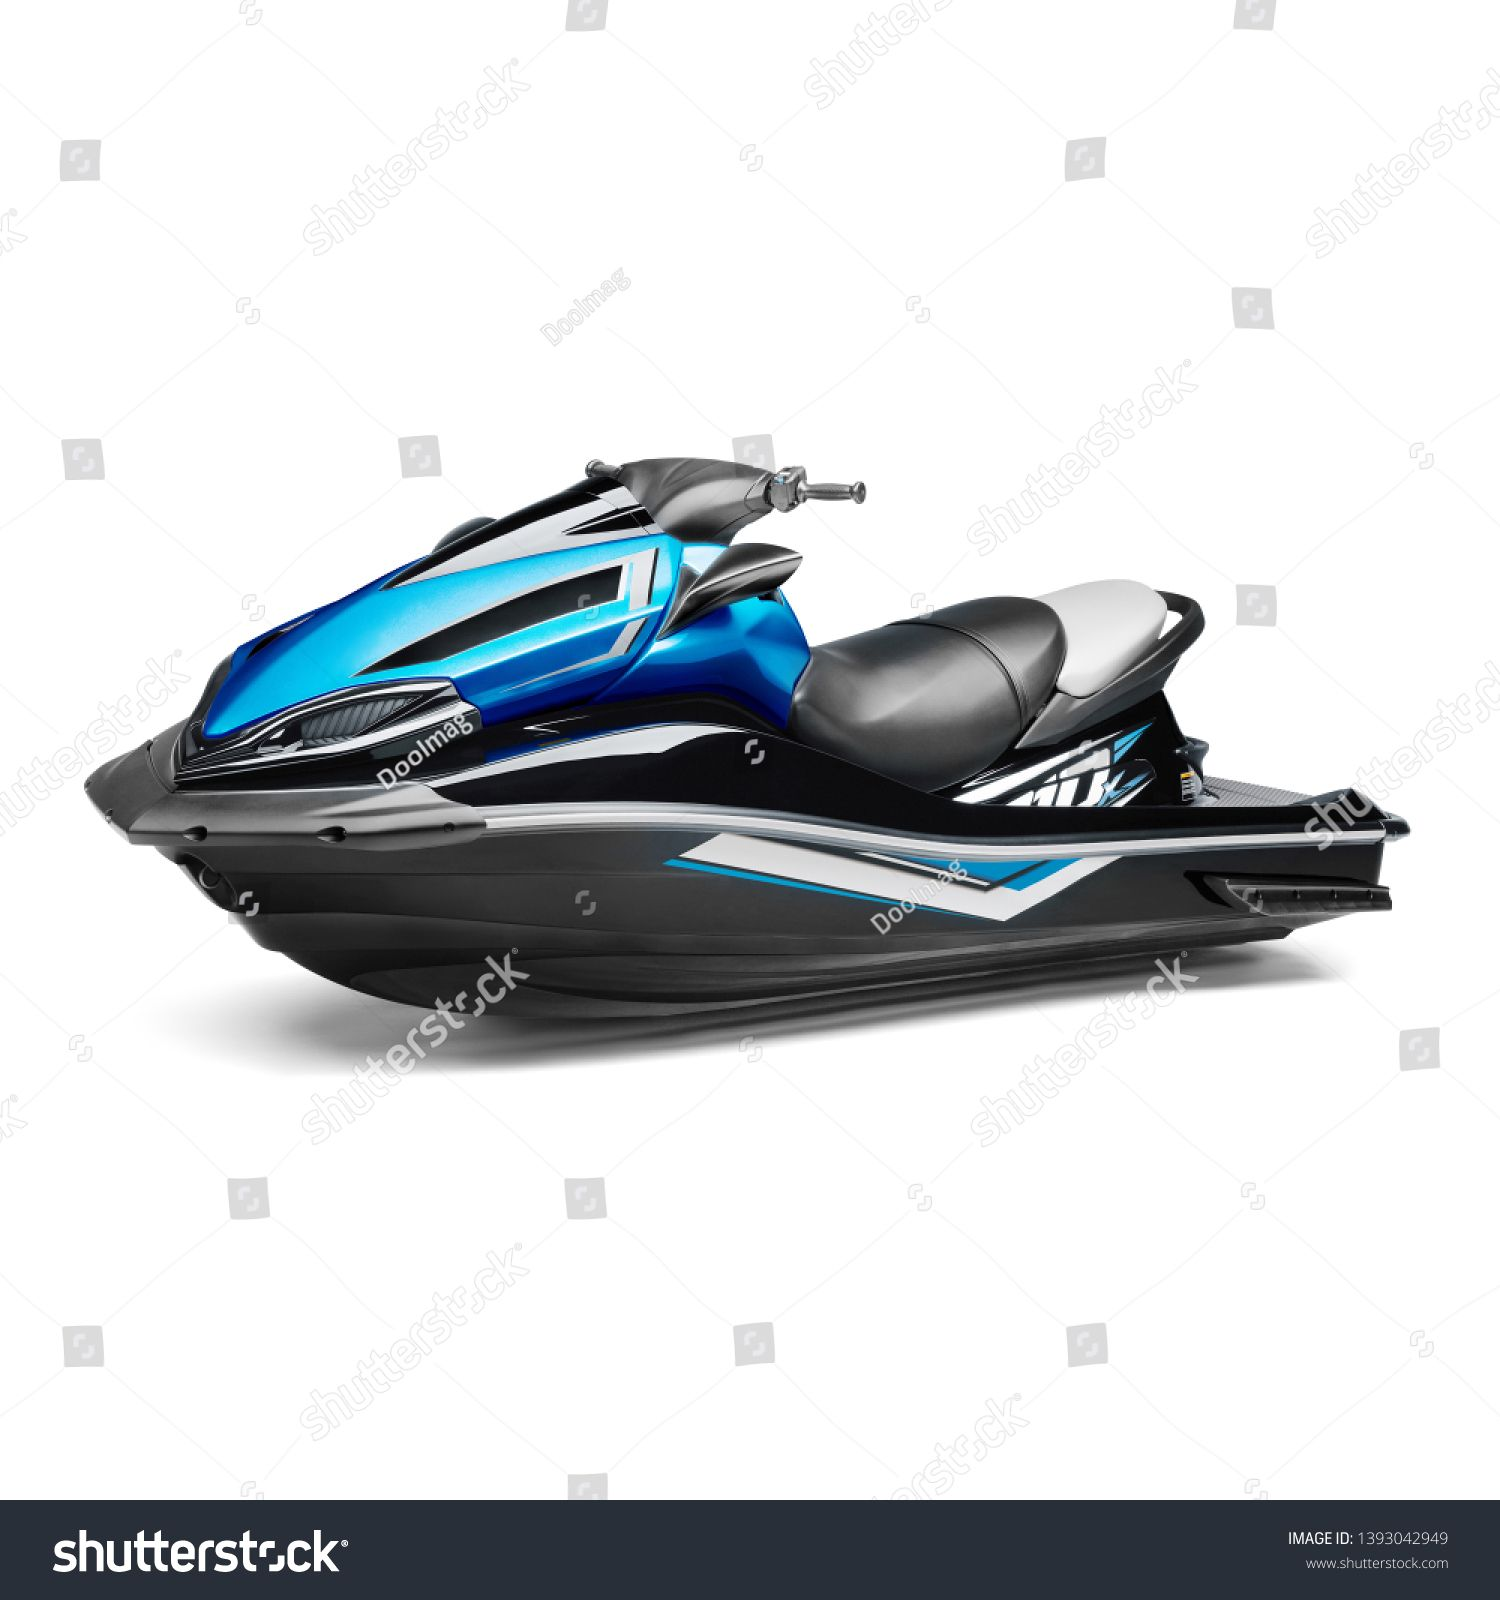 Blue And Black Jet Ski Isolated On White Background Side View Of Water Scooter Pwc Personal Water Craft Vehicle Recreational Watercraft Jet Ski Skiing Blue